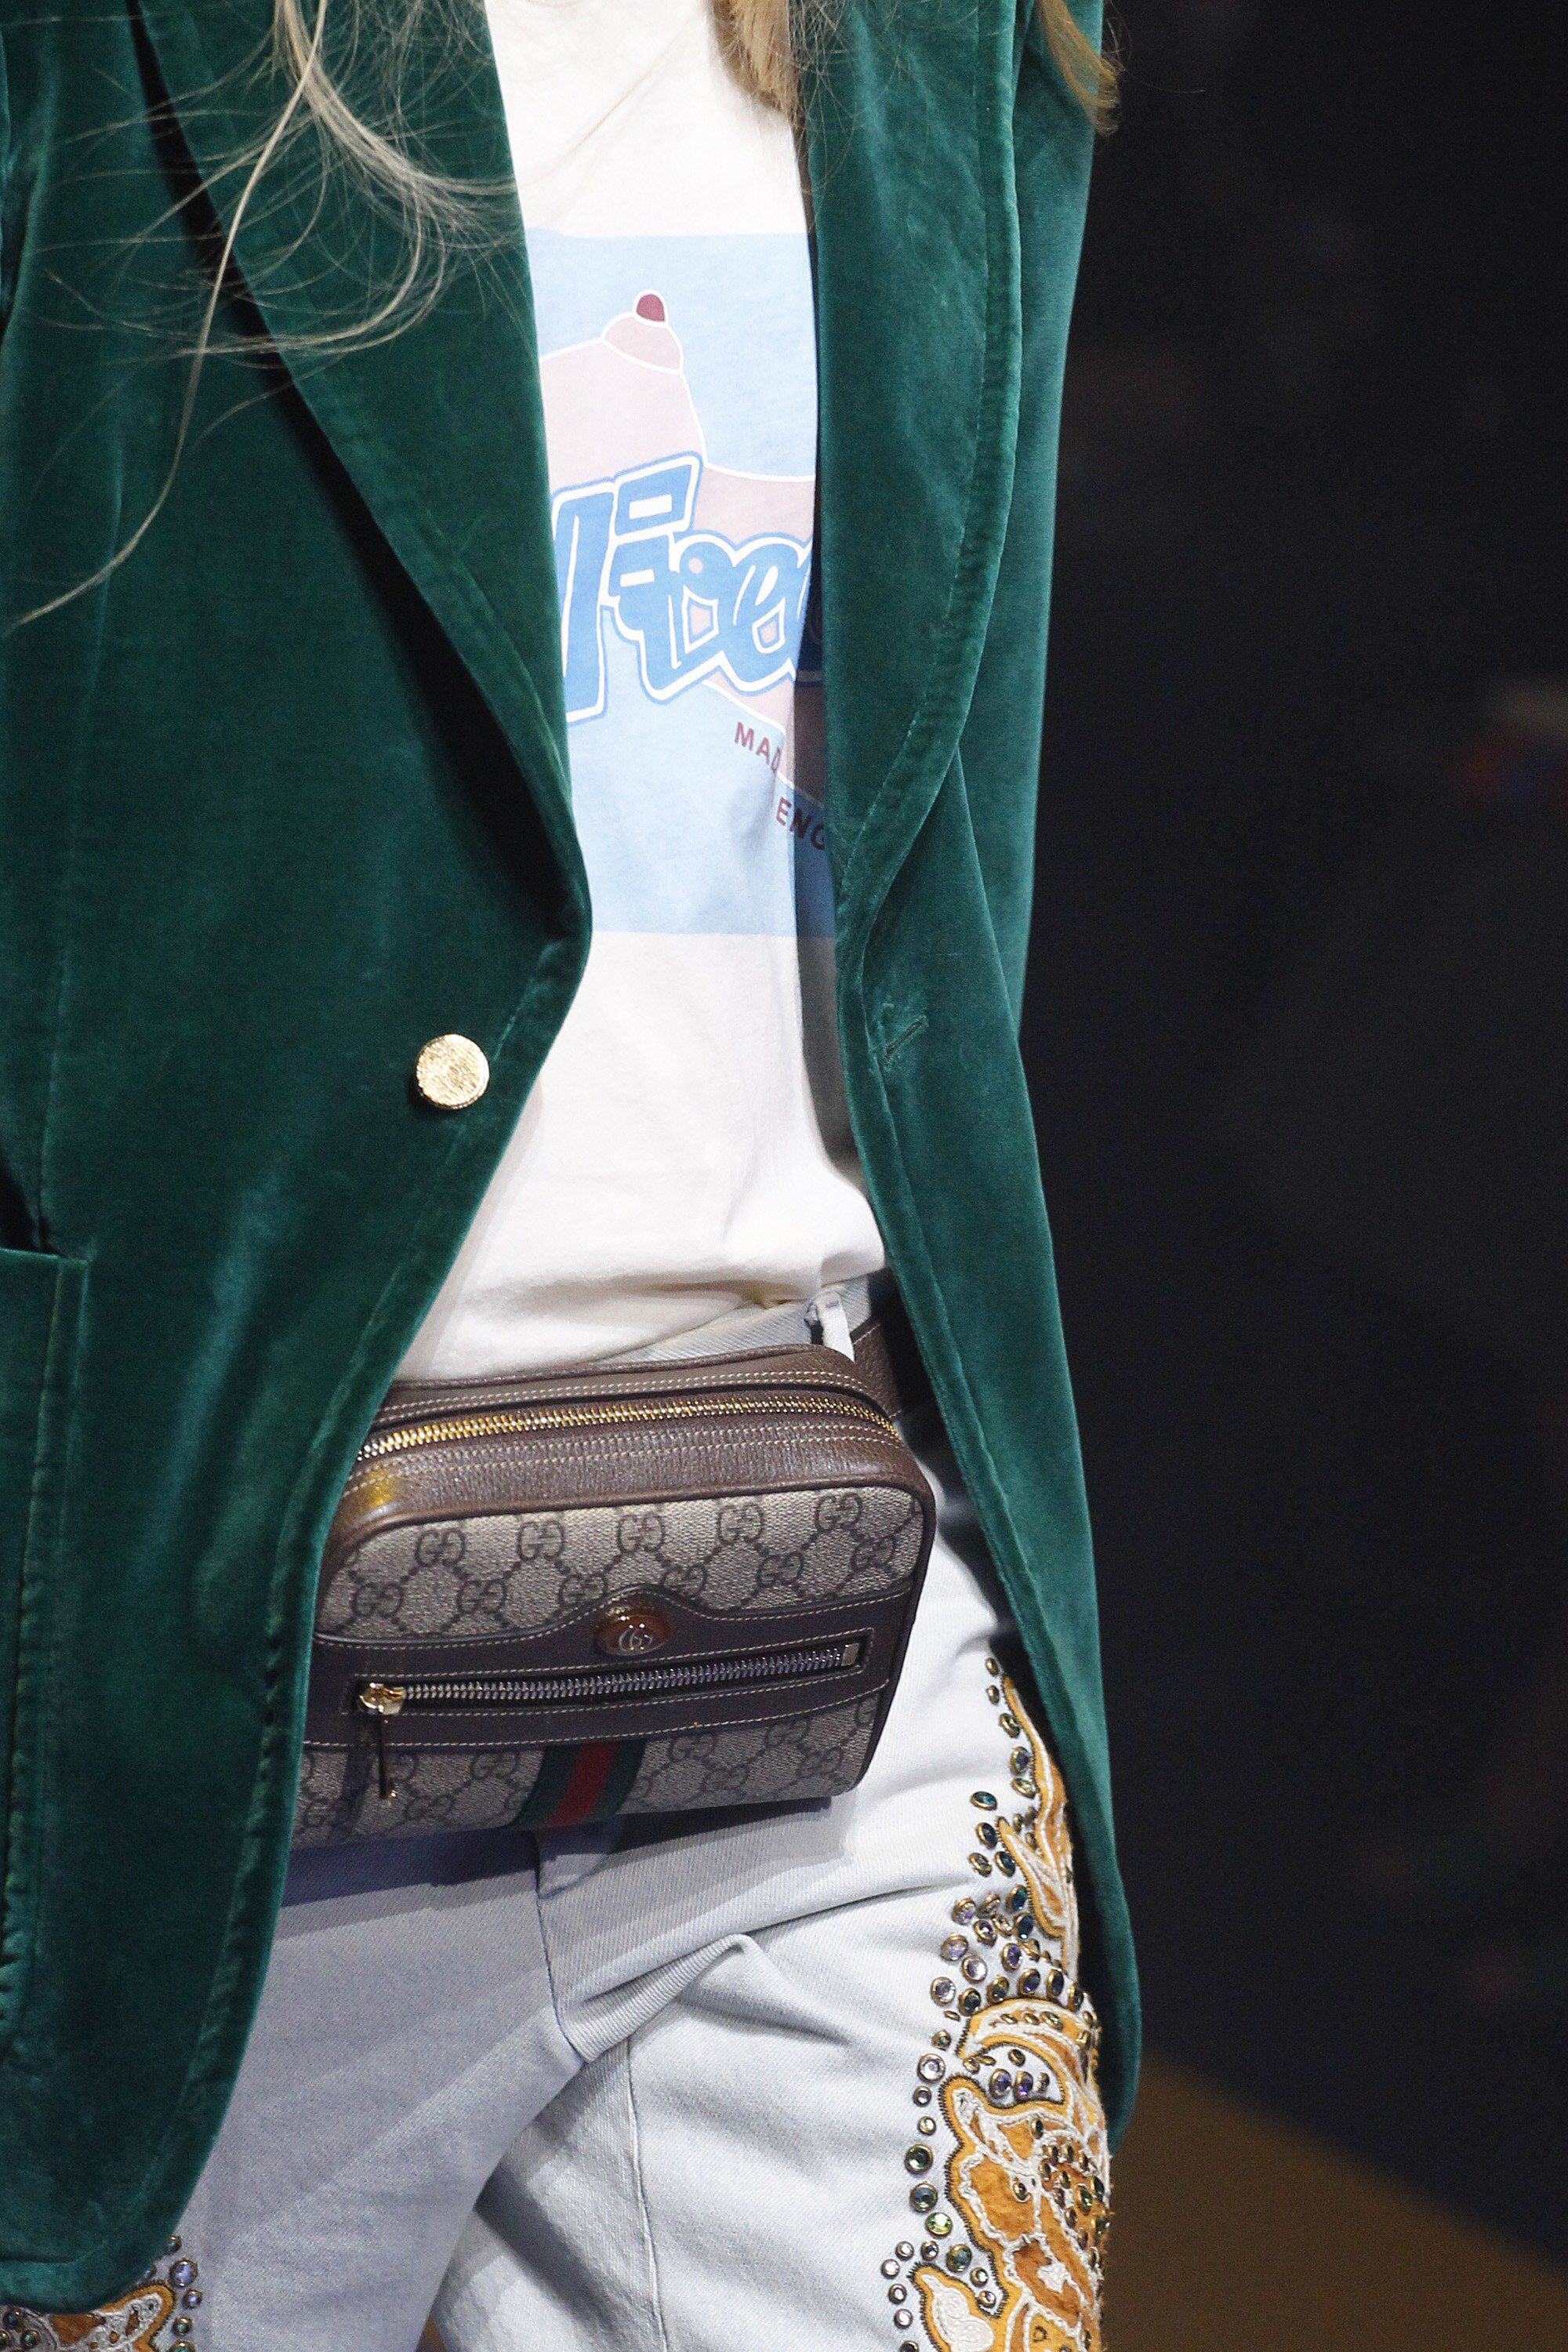 b9d52b49bcb9 Gucci Spring 2018 Ready-to-Wear Fashion Show Details